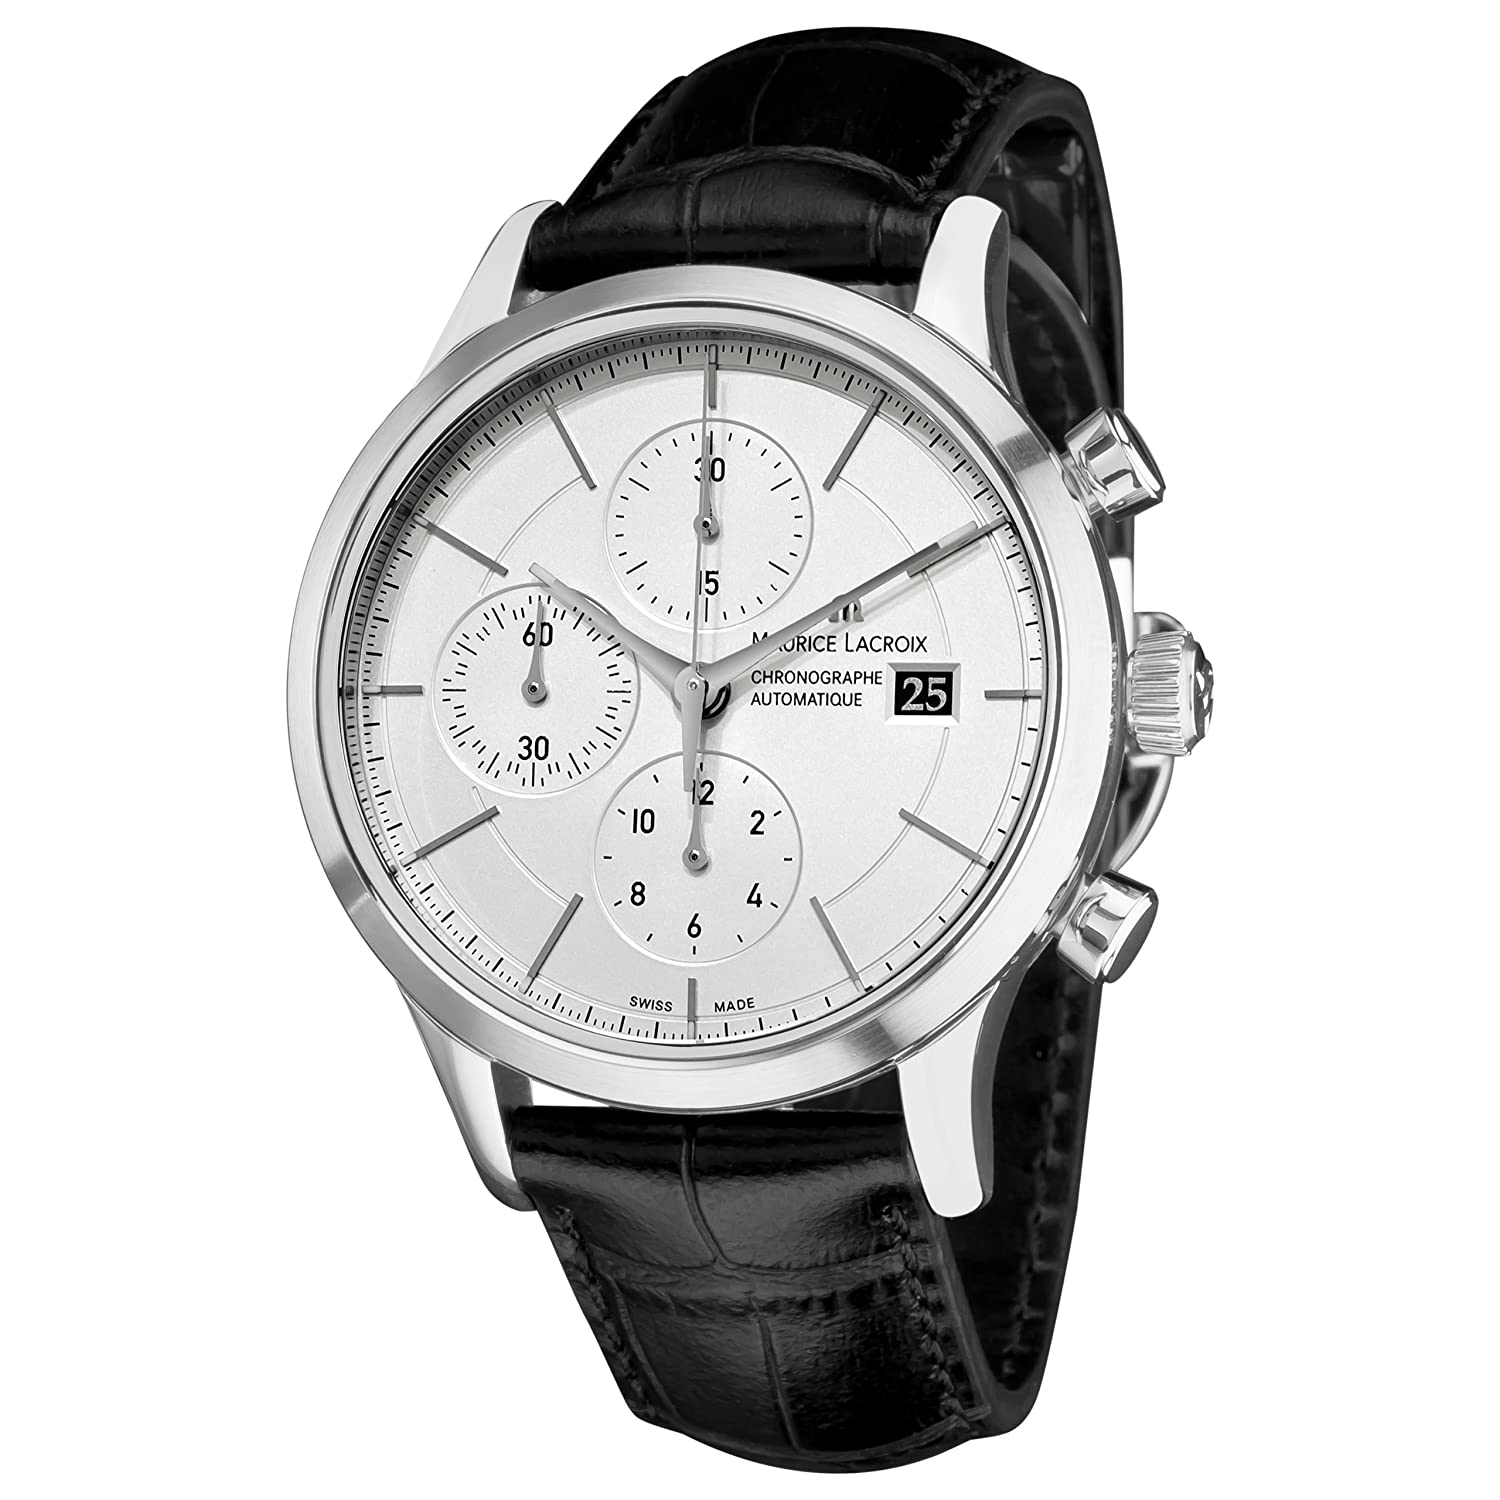 Amazon.com: Maurice Lacroix Mens LC6058-SS001130 Les Classiqu Chronograph Automatic Watch: Maurice Lacroix: Watches